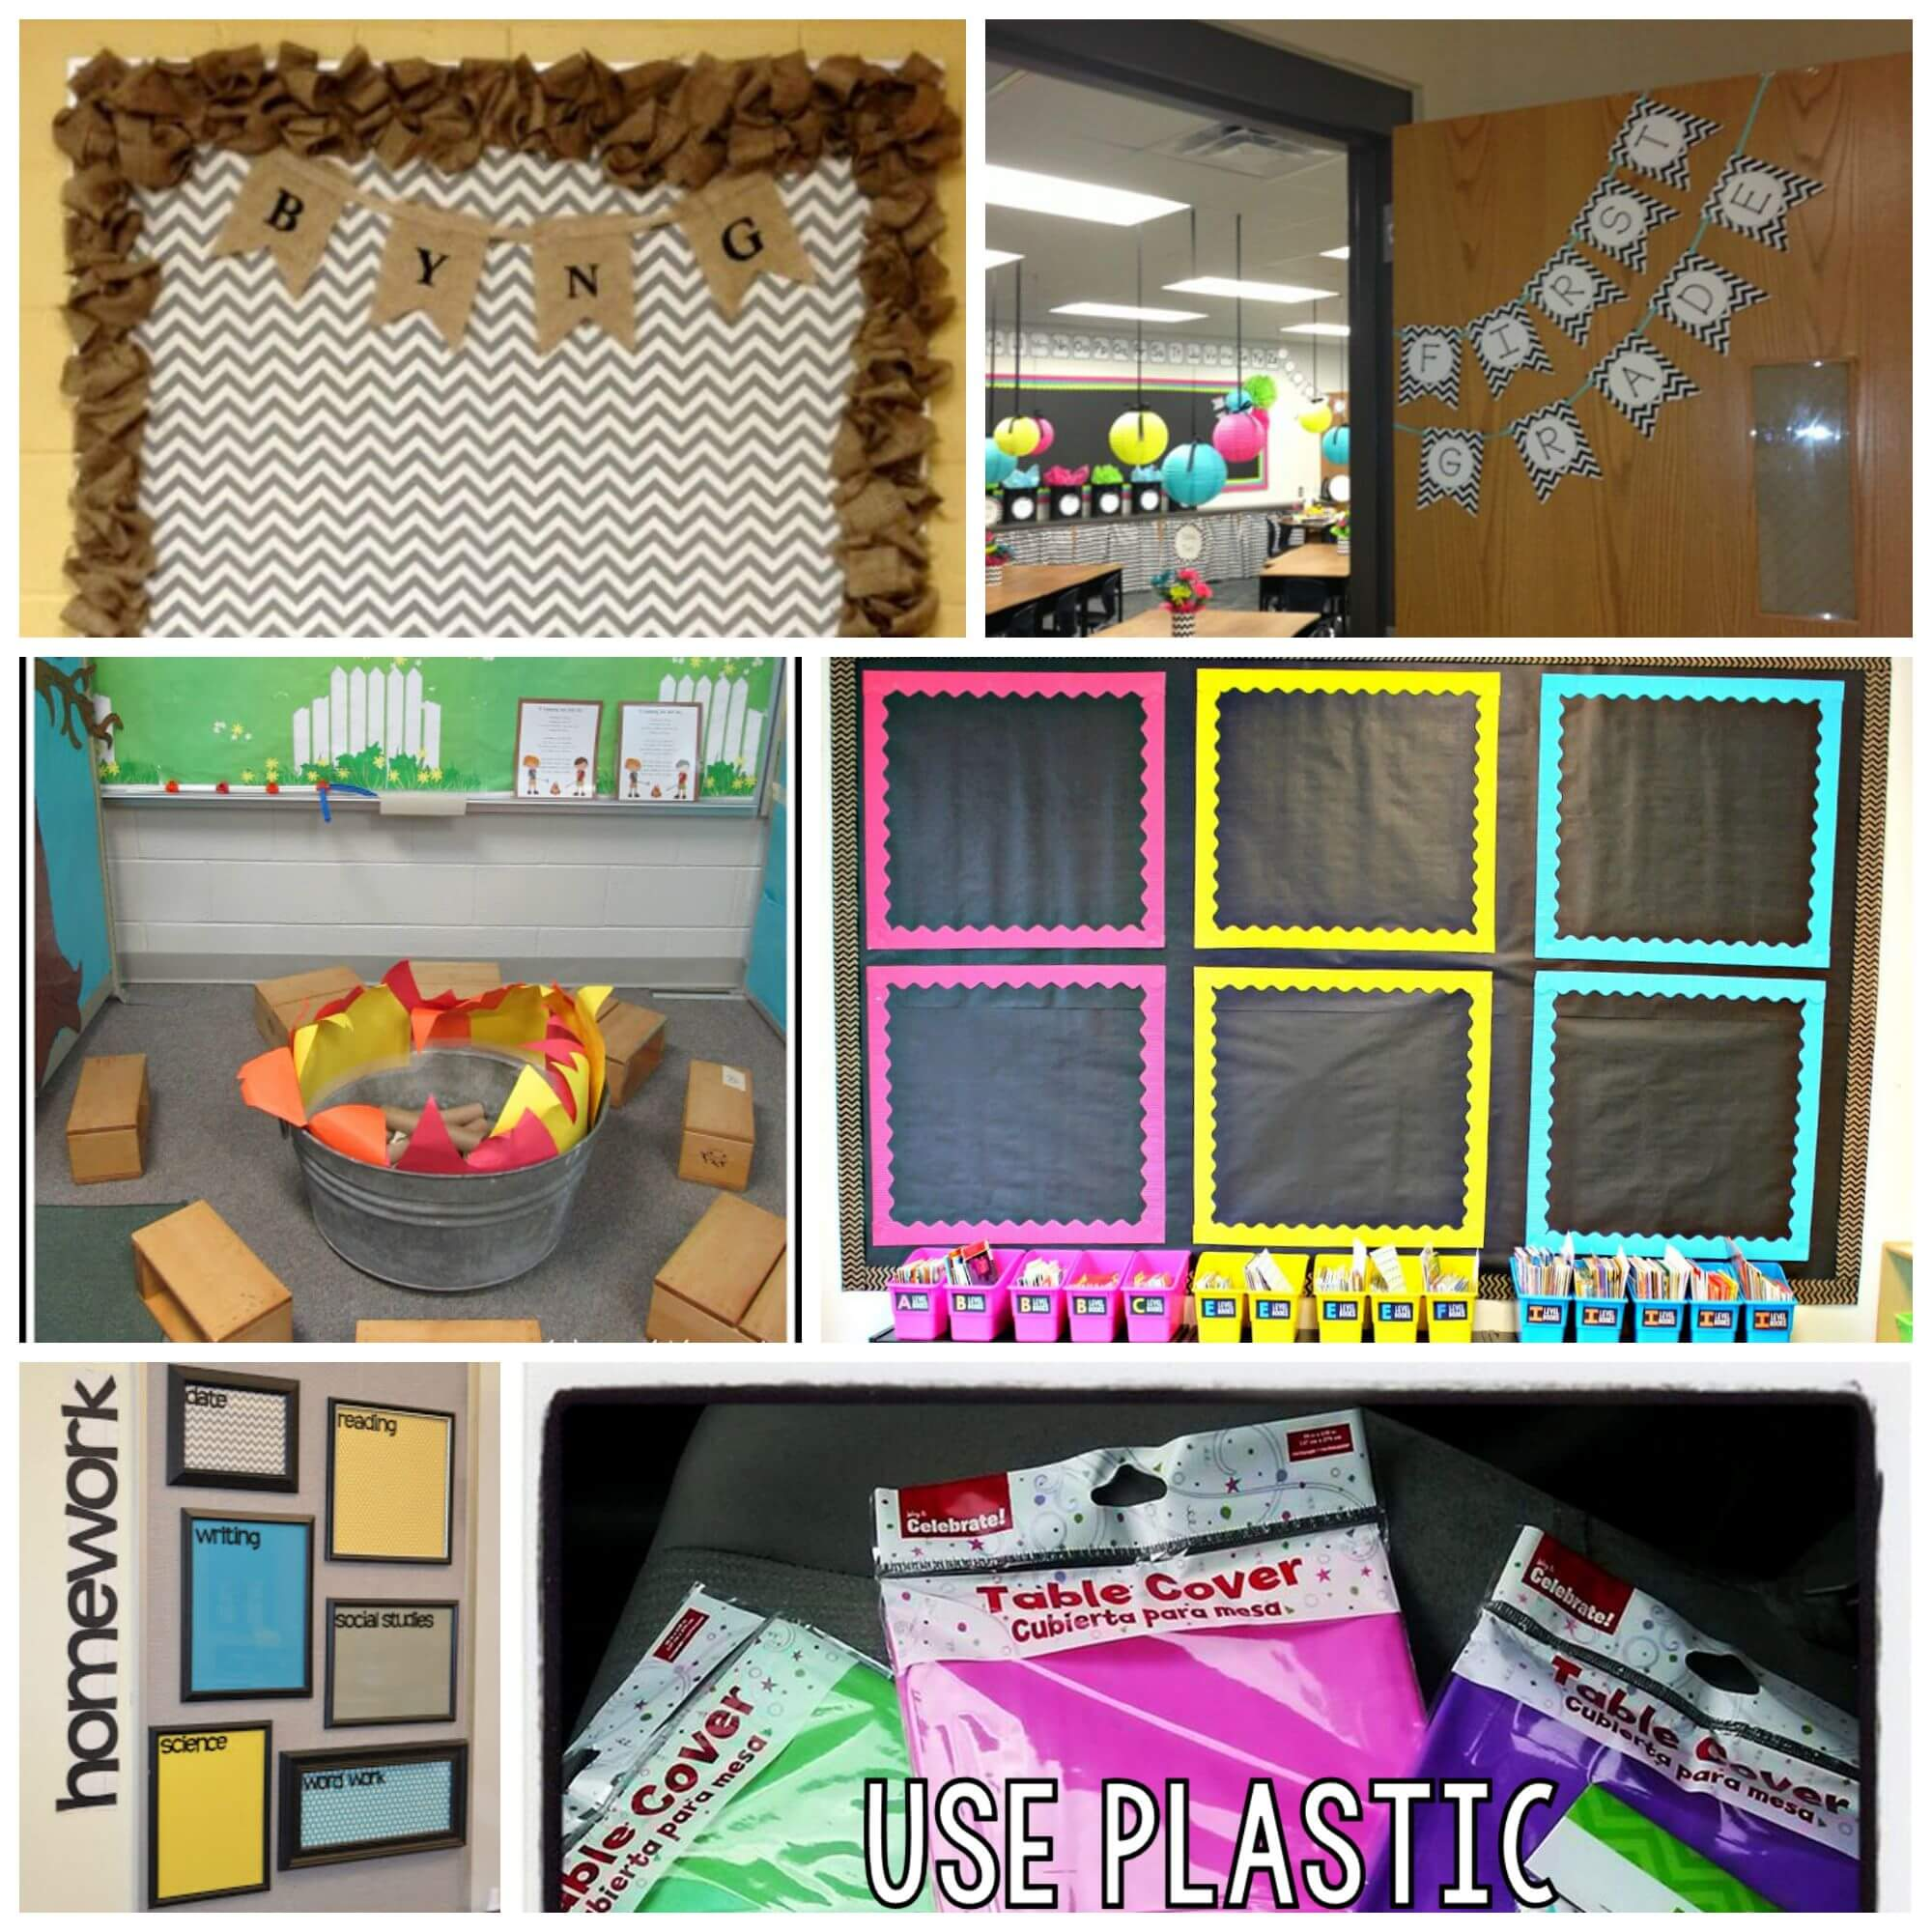 https://www.playdoughtoplato.com/wp-content/uploads/2015/07/Clever-classroom-decorations.jpg